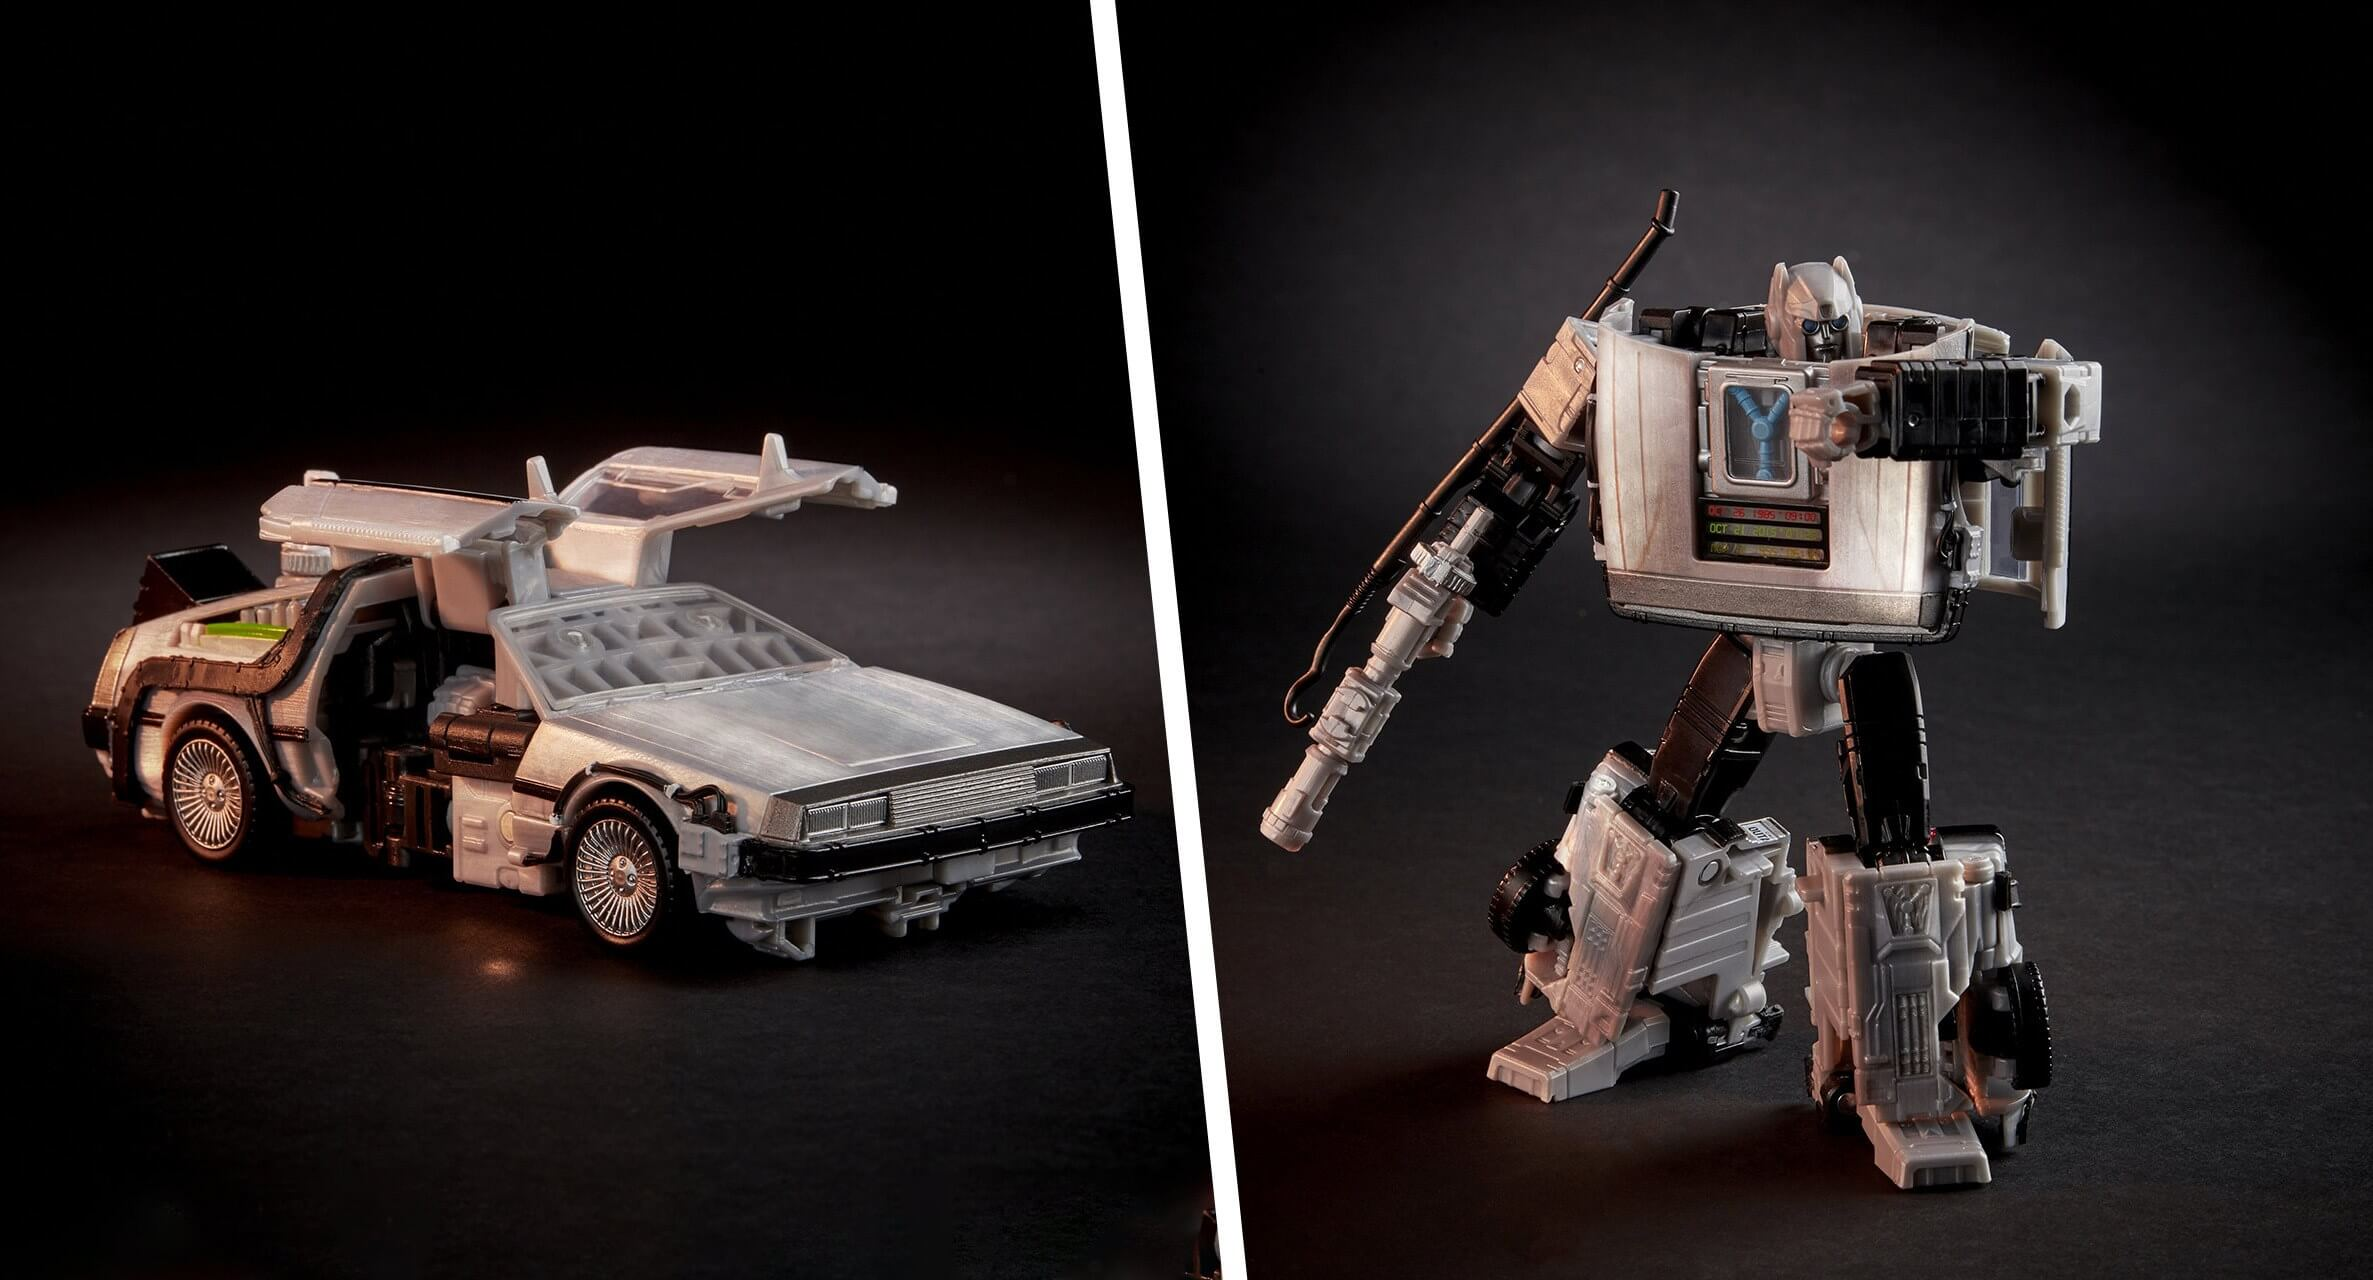 Check out this Back to the Future/Transformers crossover figure